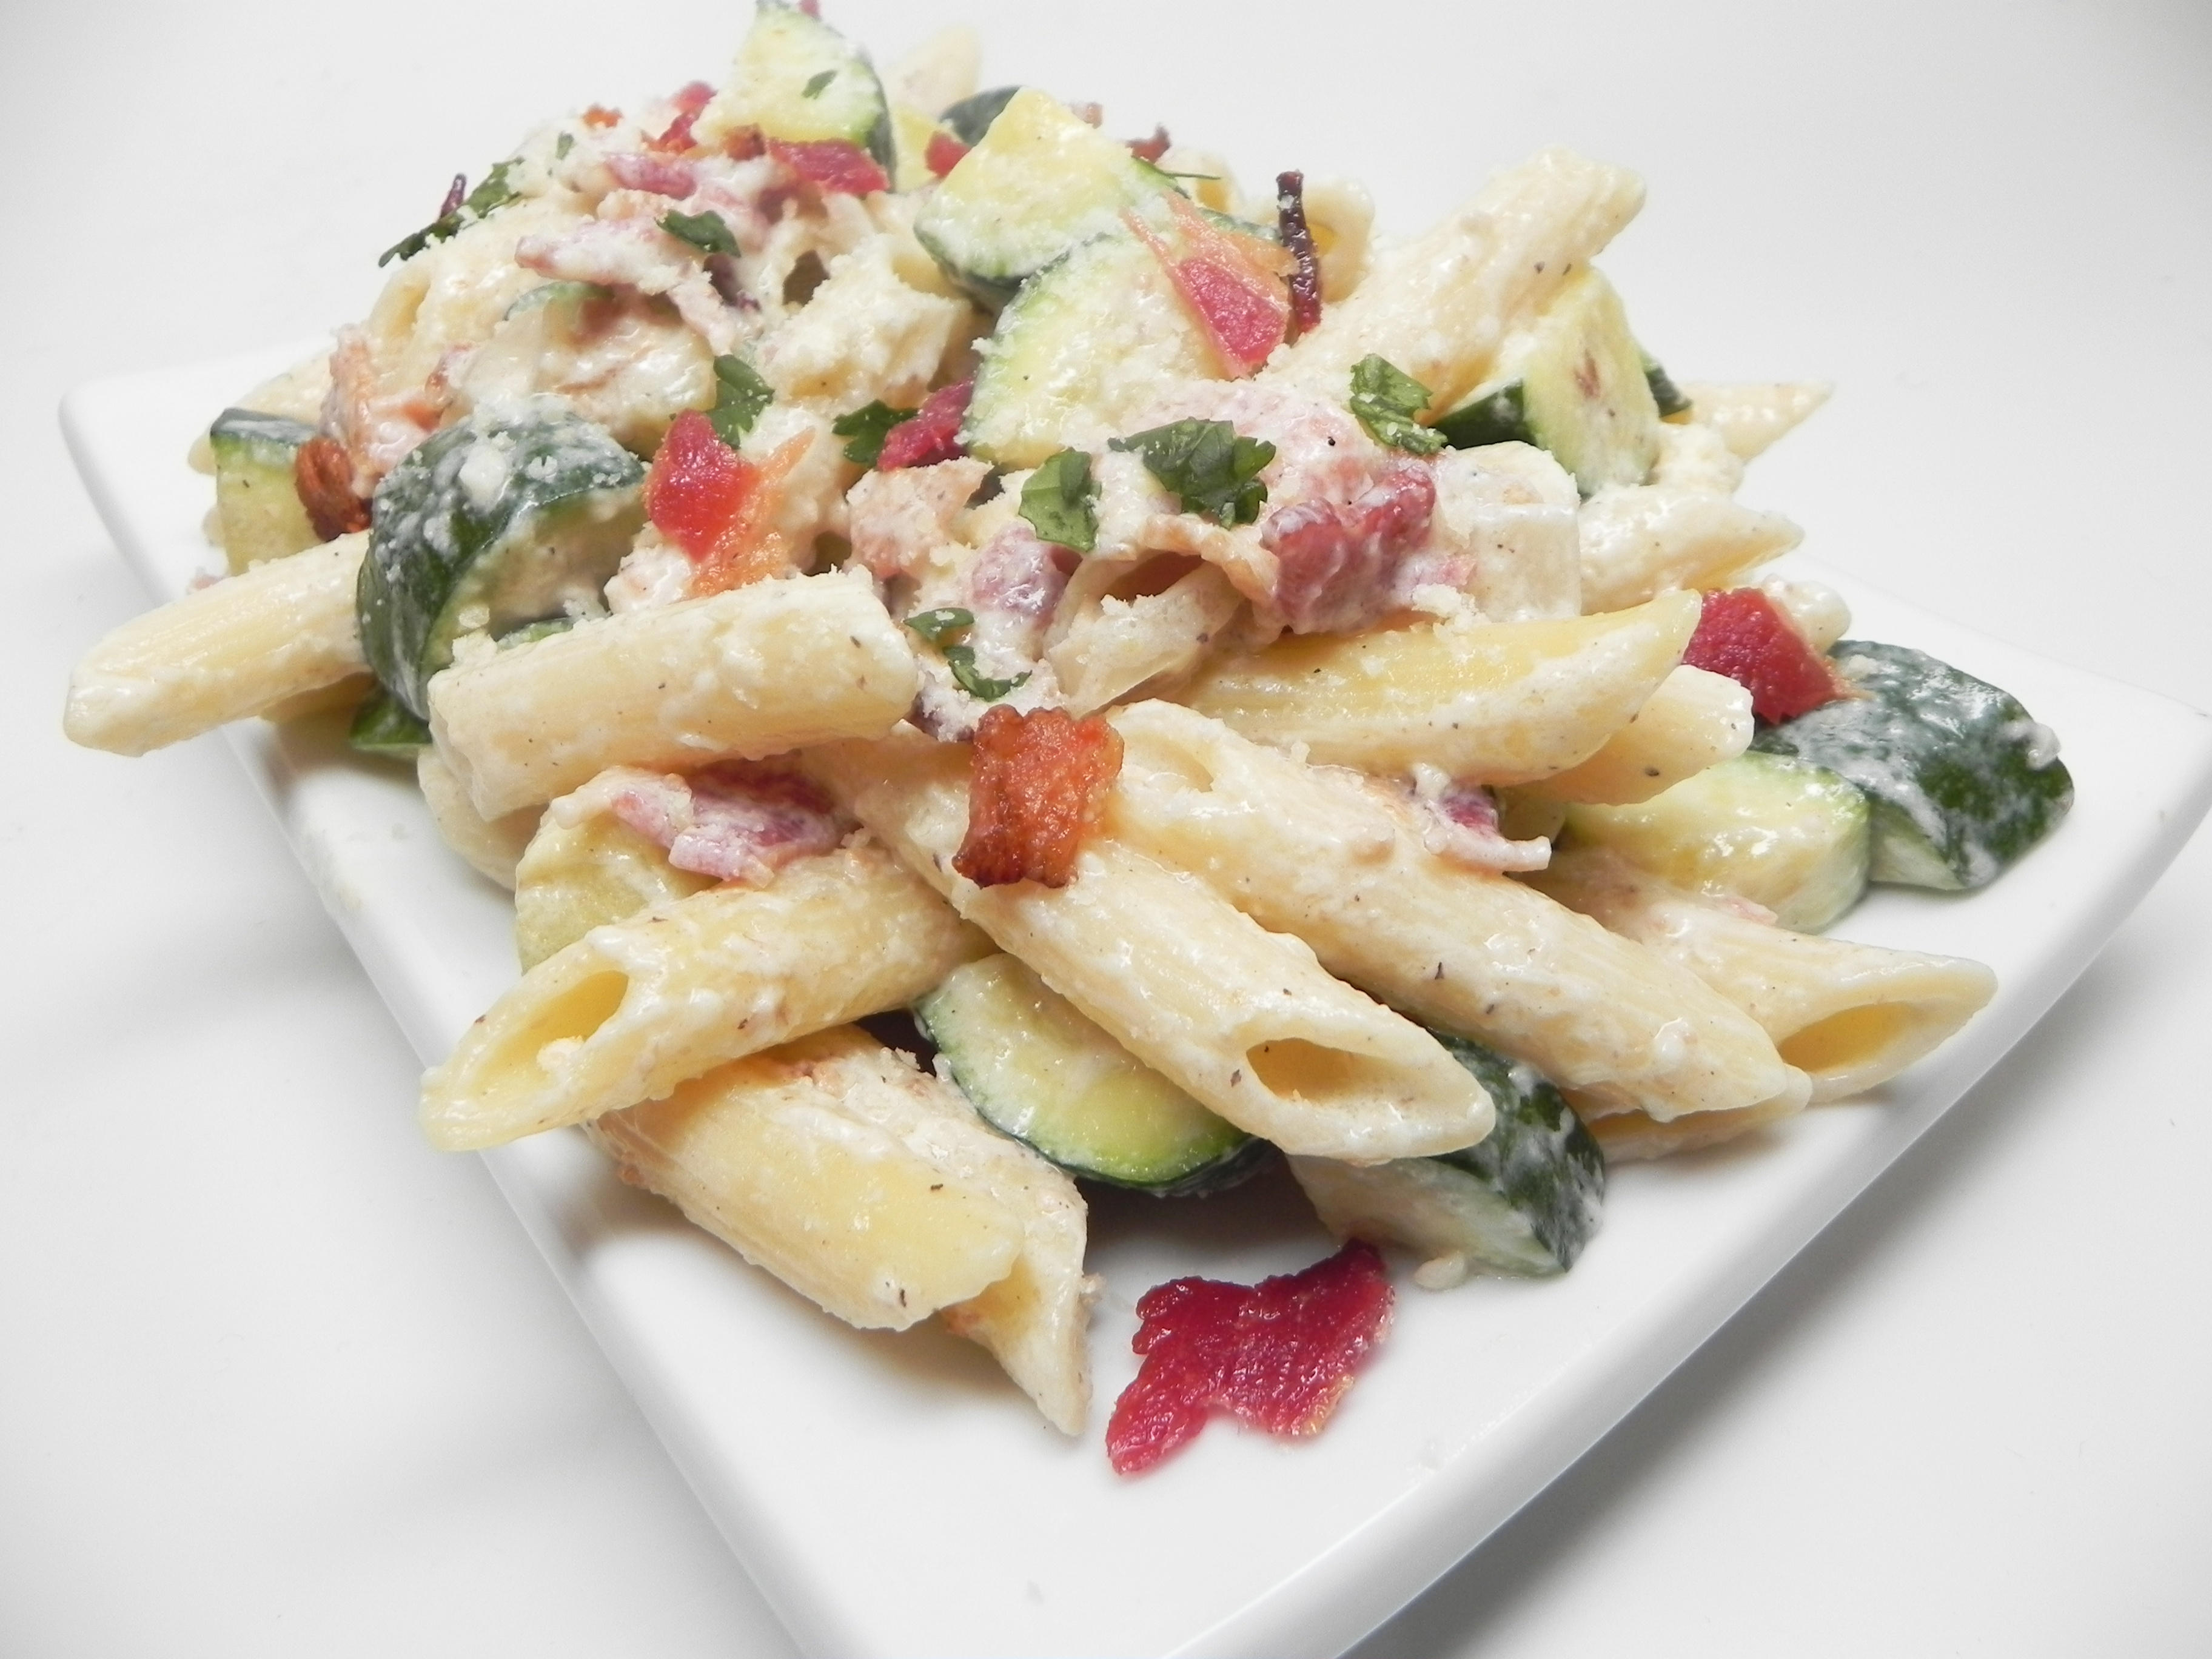 Penne with Bacon and Zucchini manella